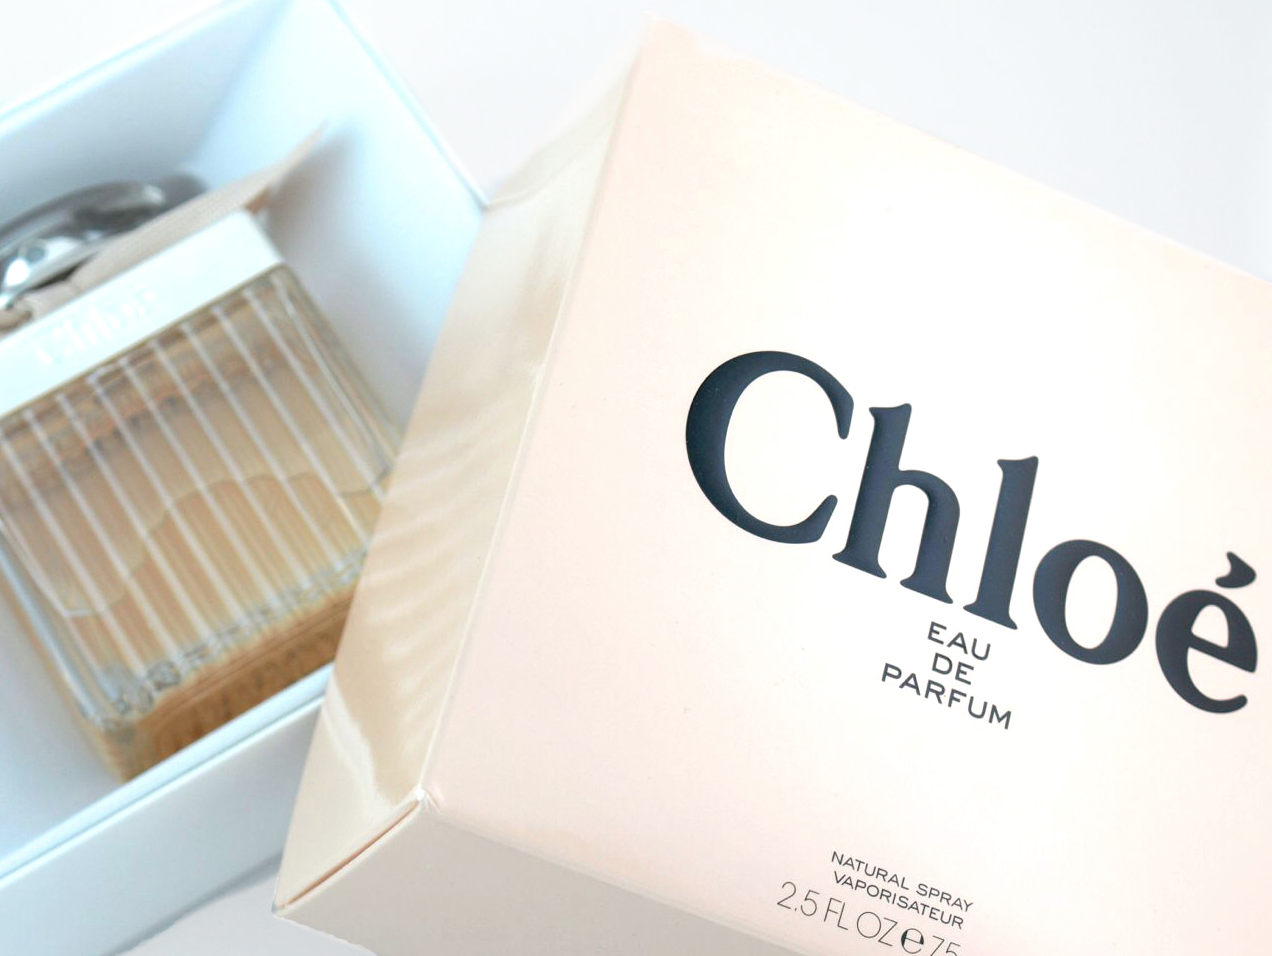 Chloe Eau de Parfum: Review